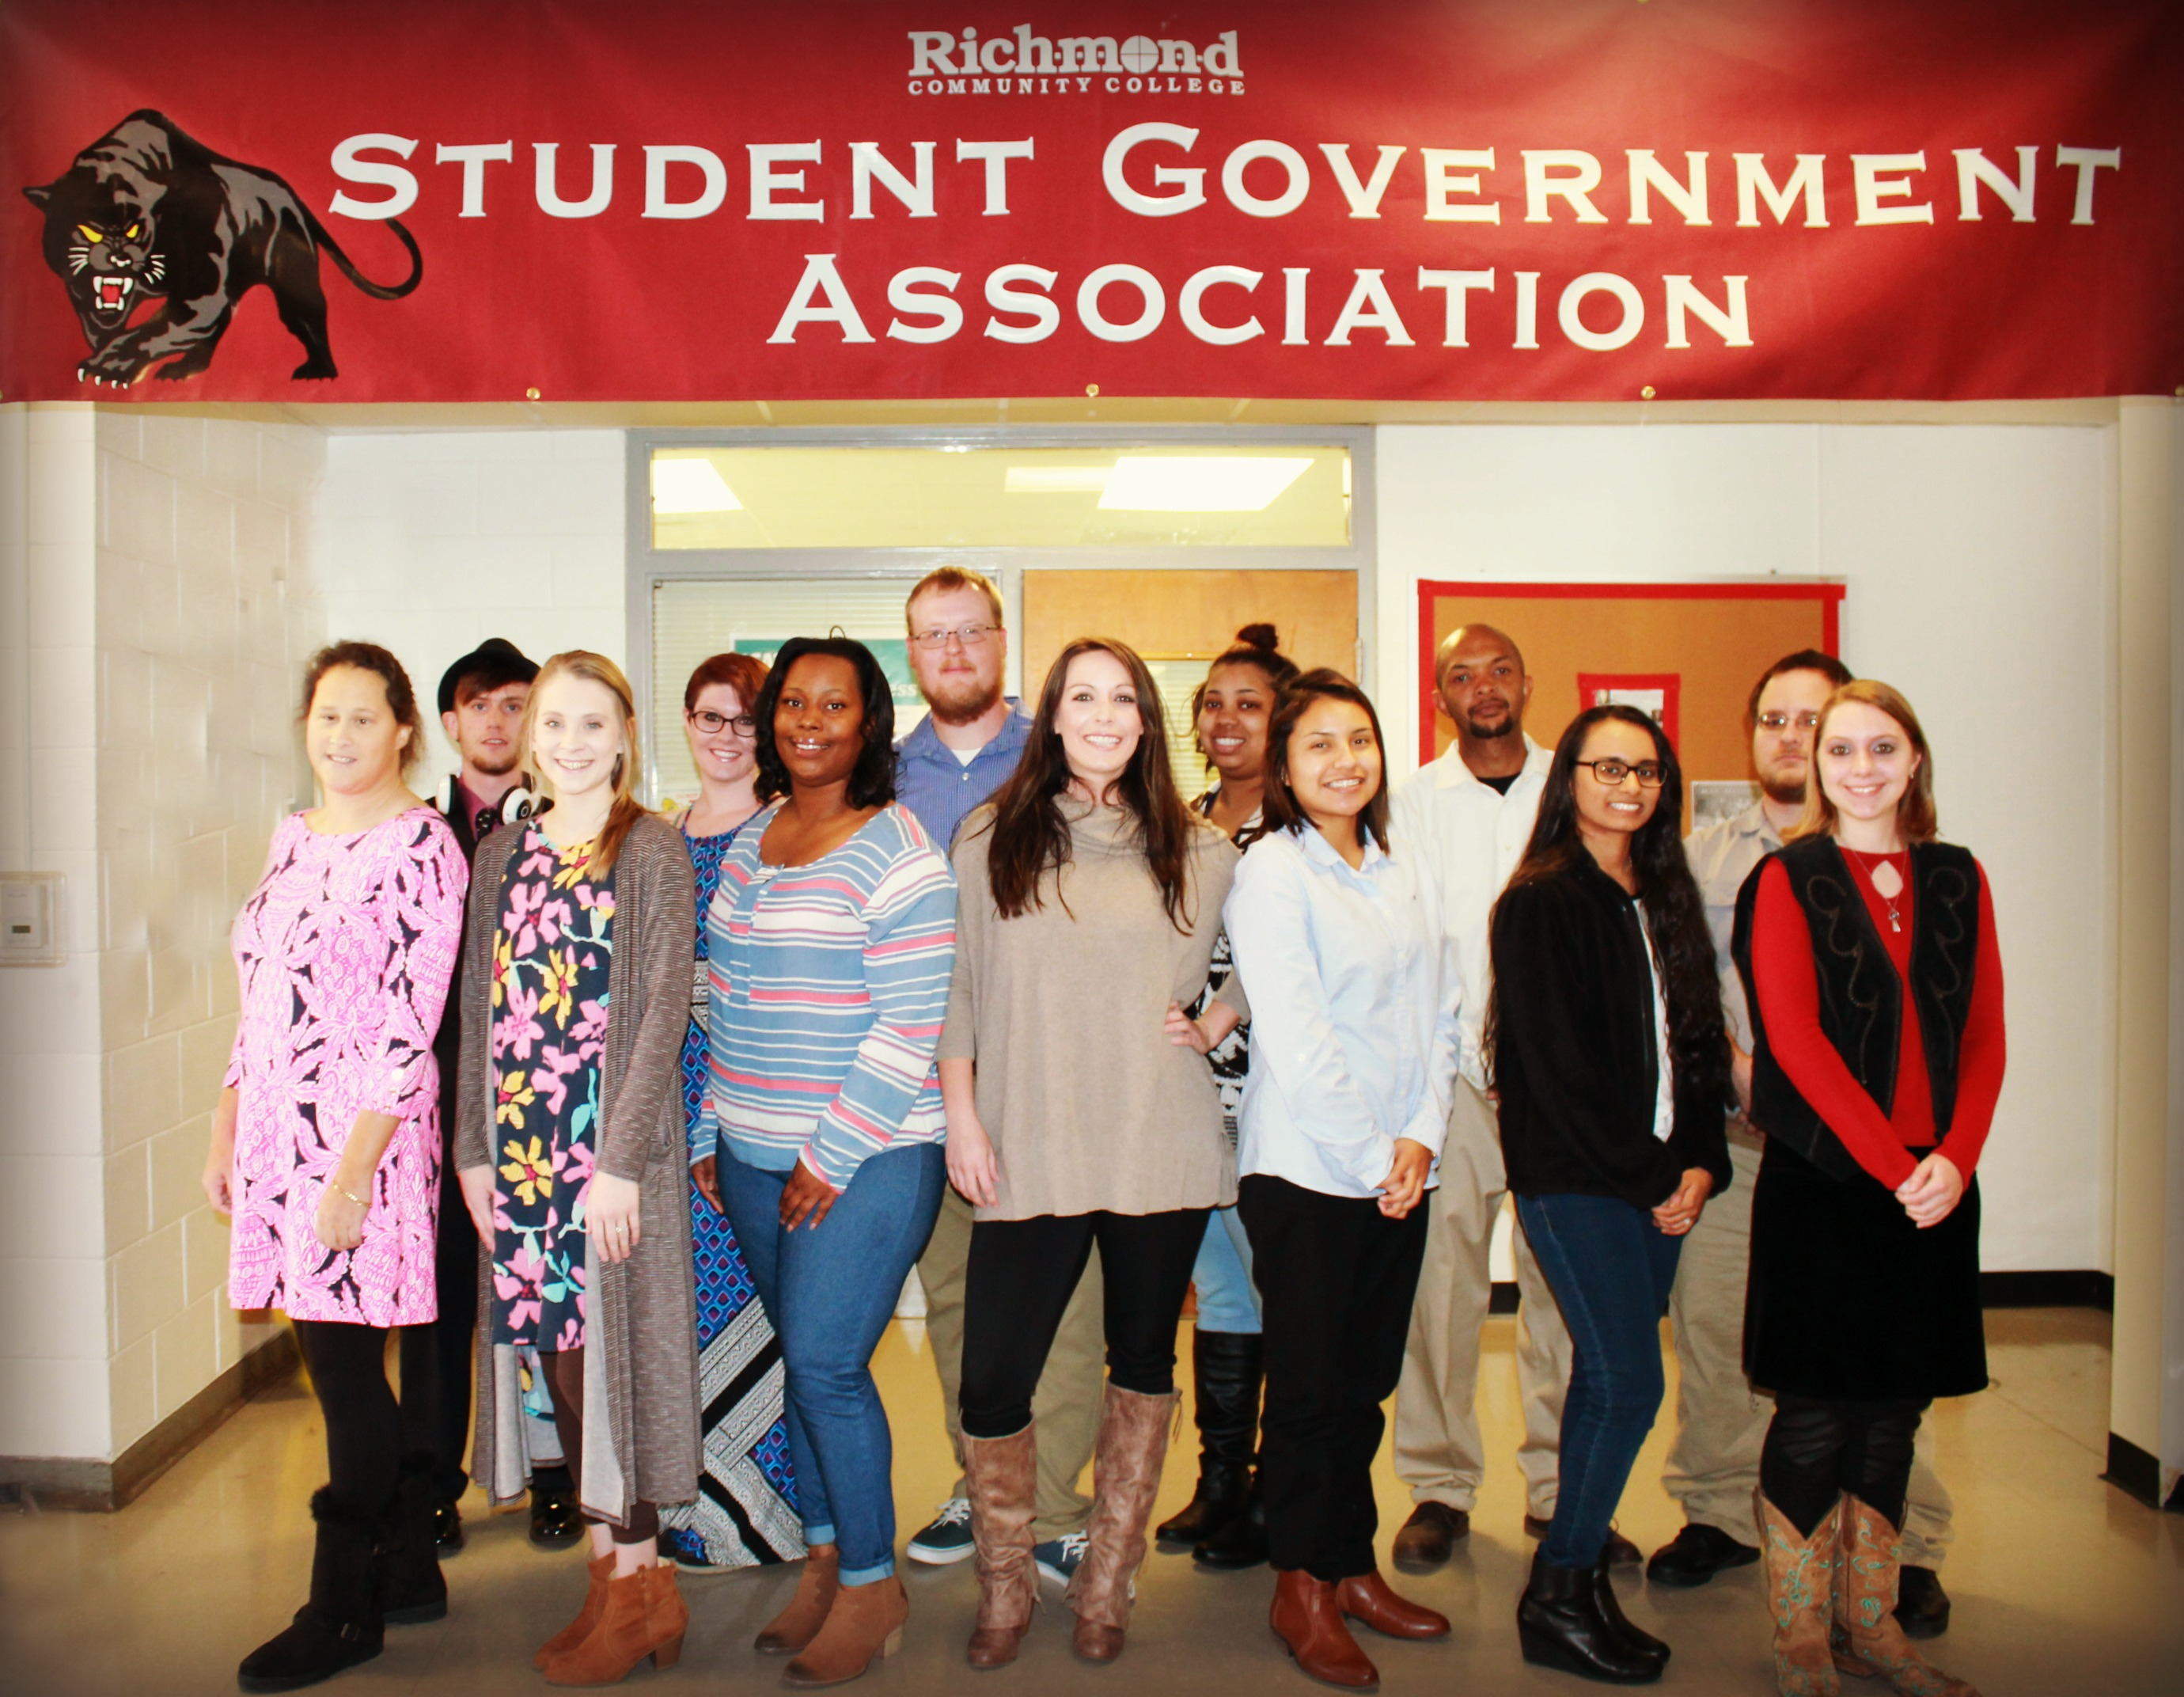 Pictured are members of the Student Government Association 2016-17